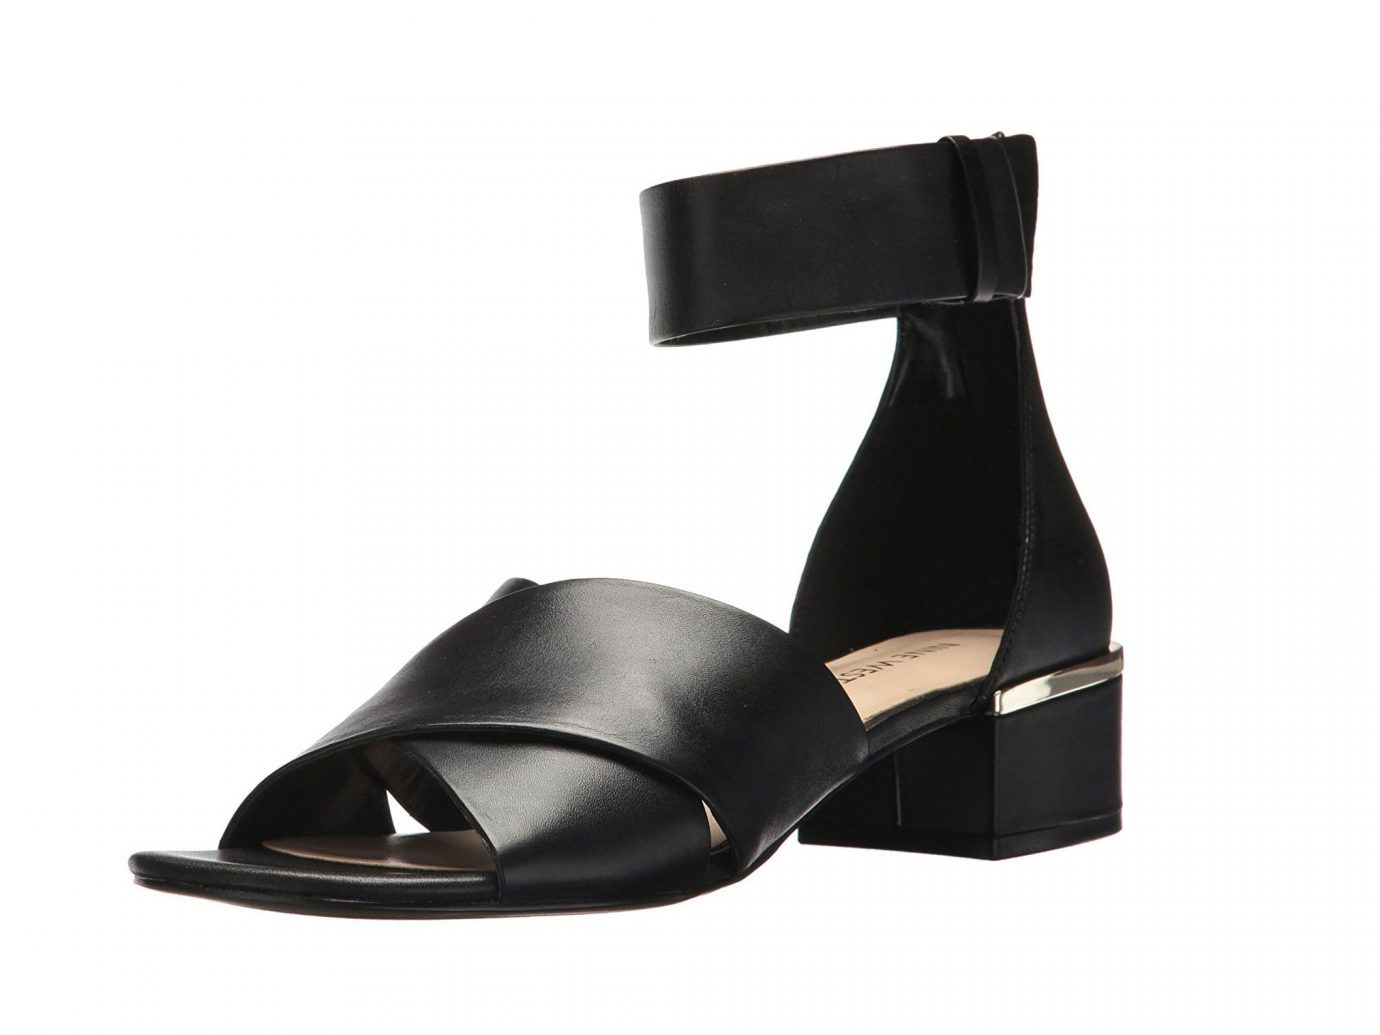 Nine West Yesterday Leather Sandals